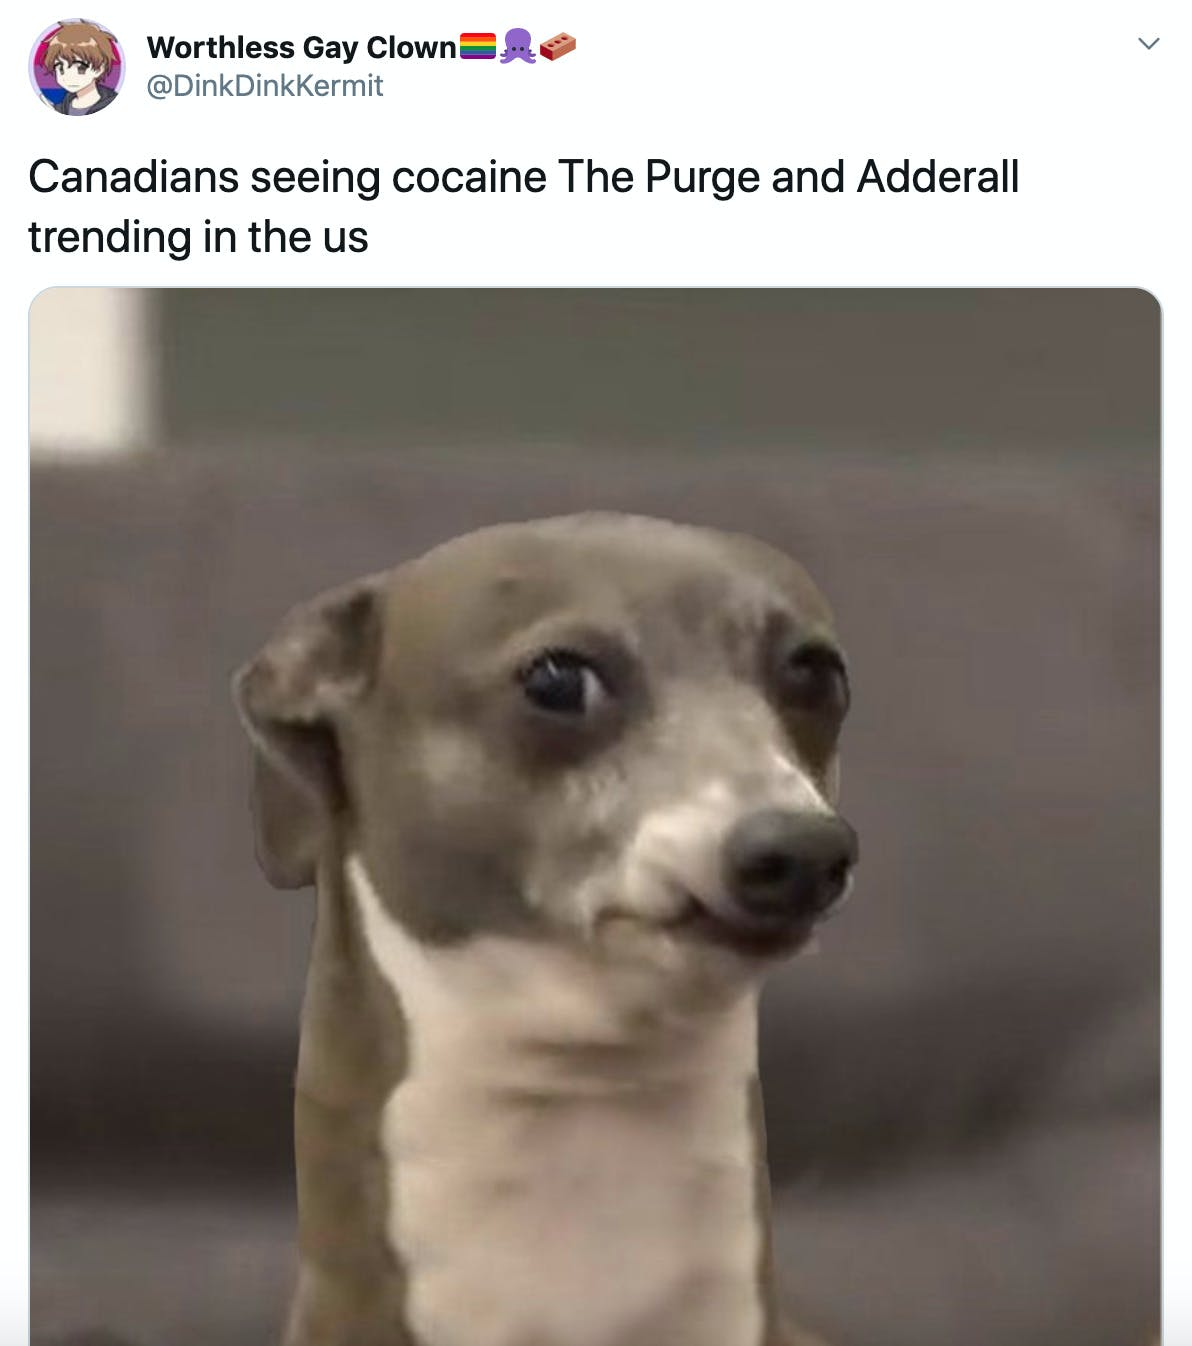 """Canadians seeing cocaine The Purge and Adderall trending in the us"" picture of a grey and white dog looking suspicious"